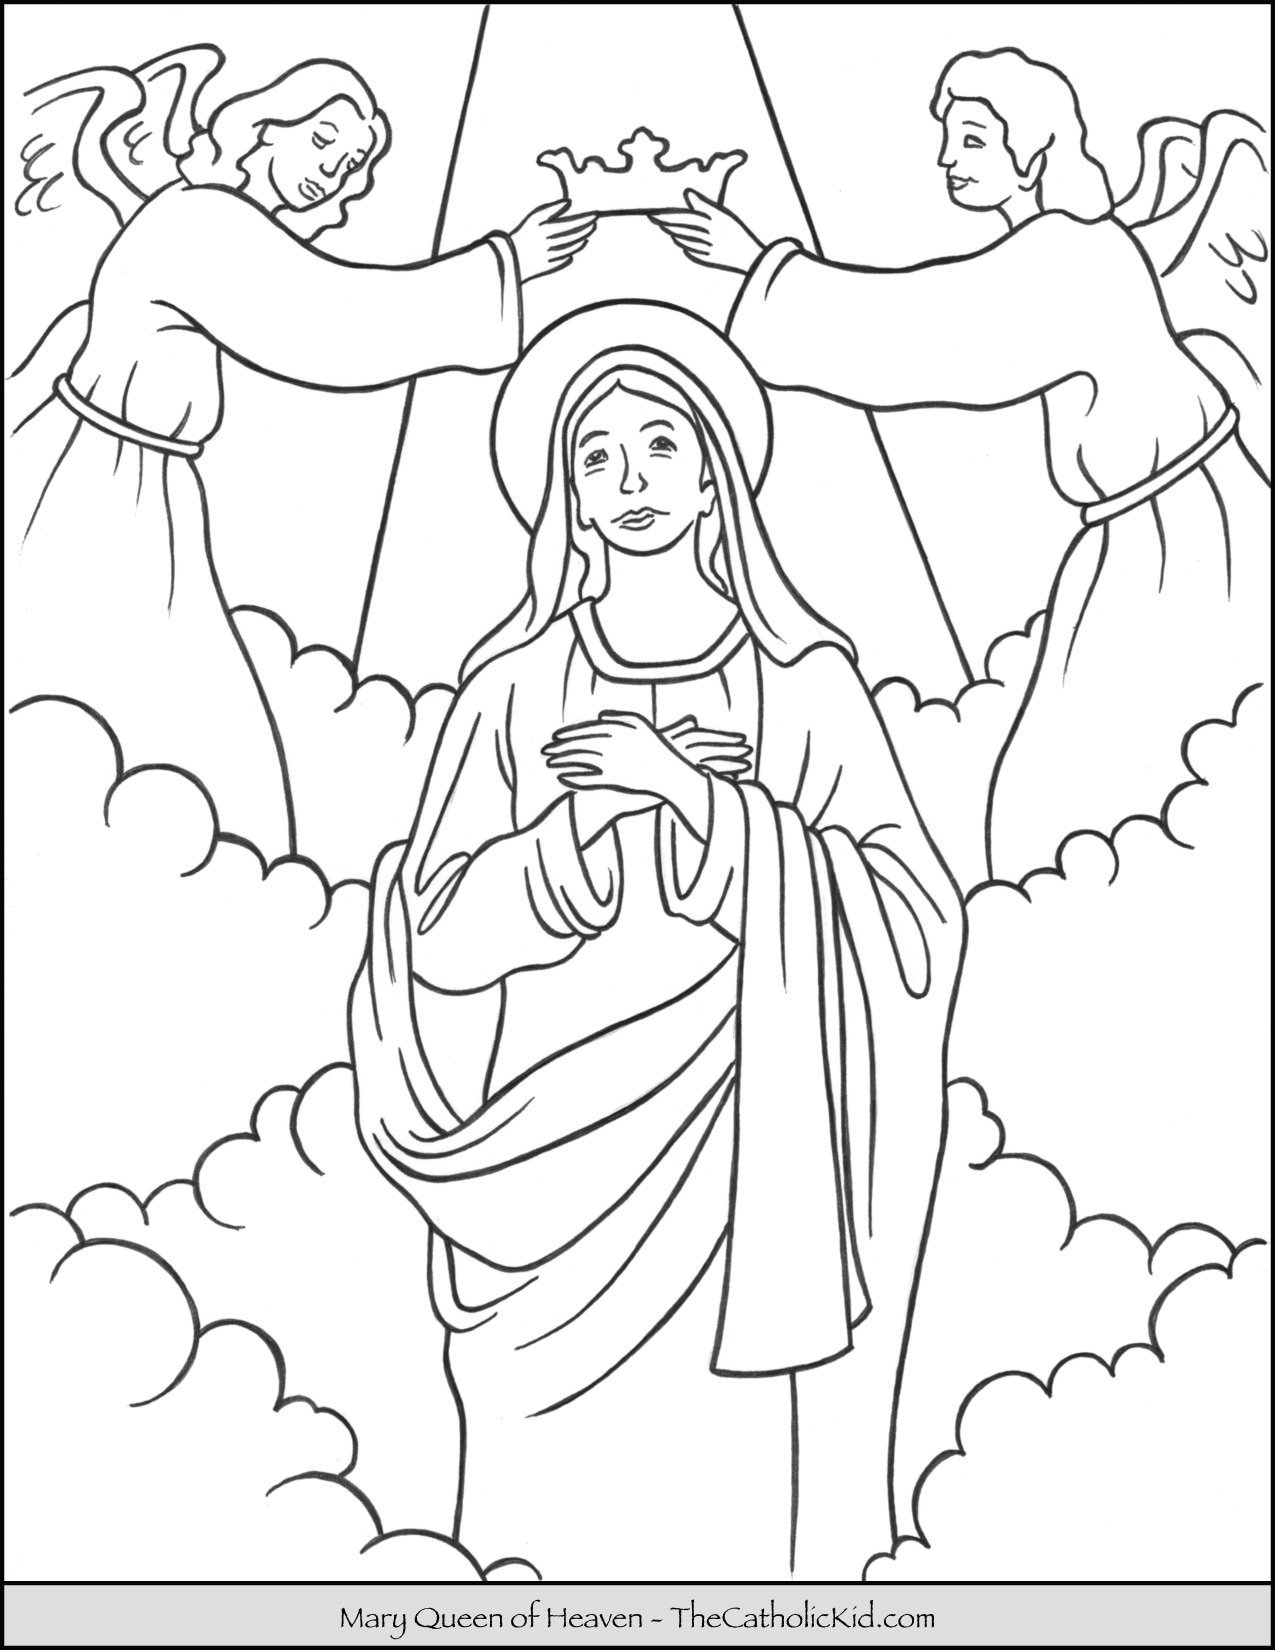 Mary Queen of Heaven Coloring Page